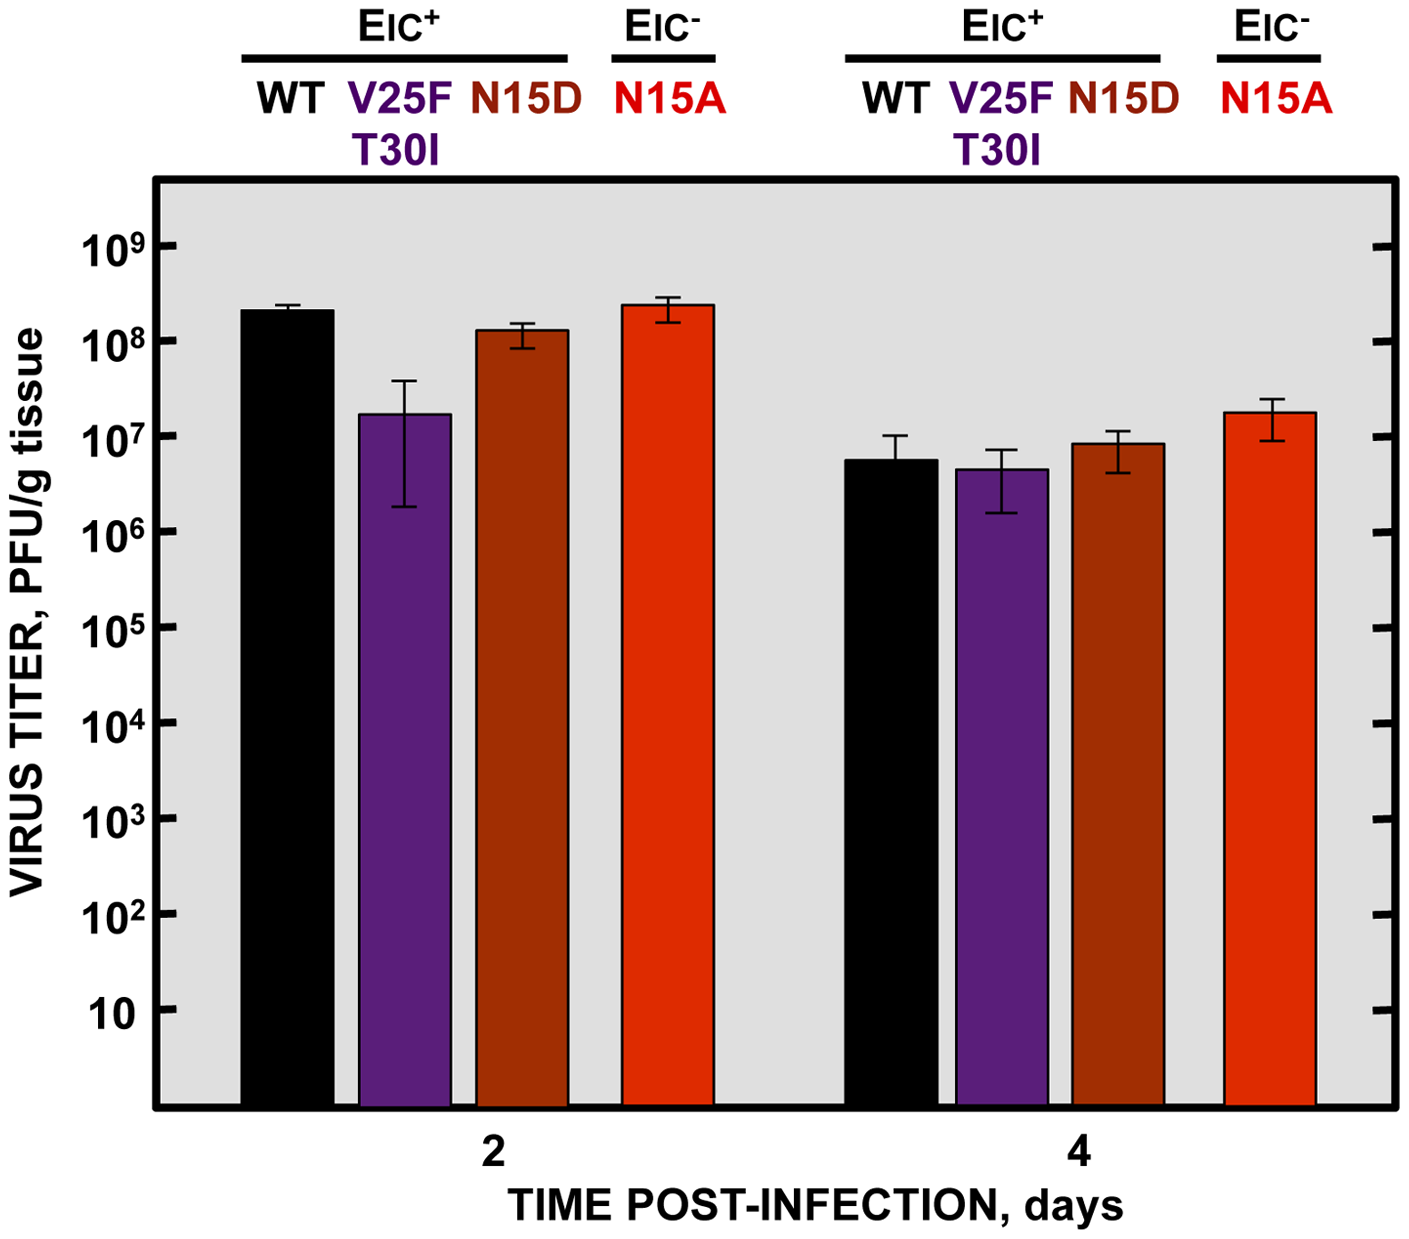 Effects of SARS-CoV E protein IC activity on virus growth in BALB/c mice lungs.